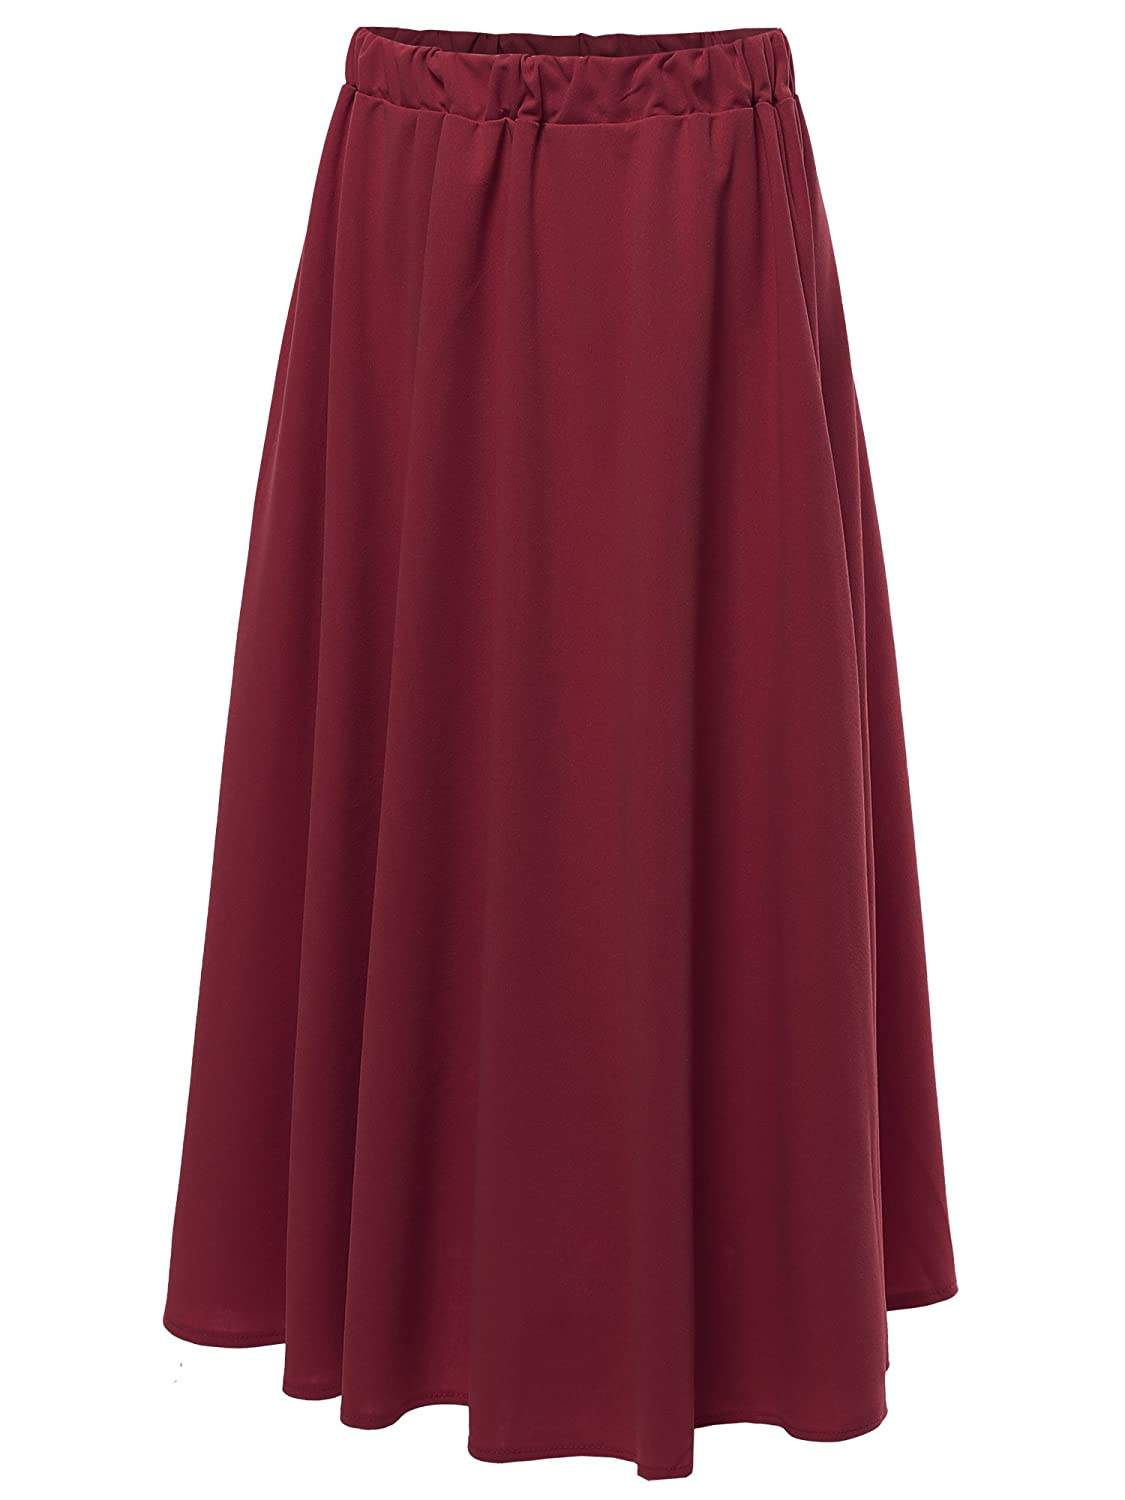 Aawskm0004 Burgundy Awesome21 Women's Solid High Waist ALine Pleated Flare Skirt  Made in USA